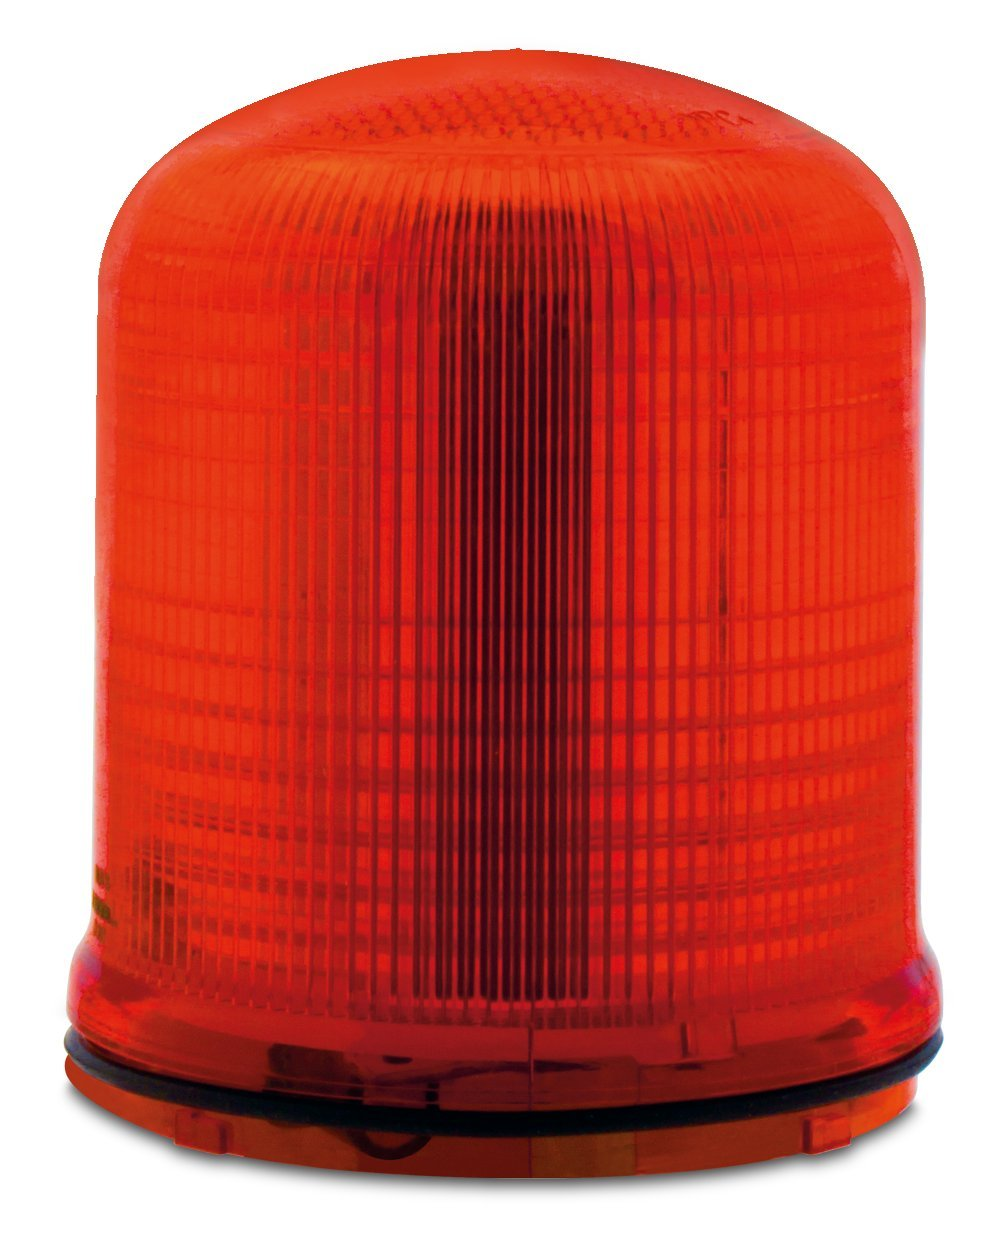 Federal Signal SLM200R Streamline Modular Multi-Pattern LED Beacon, Red, Required Base Sold Separately, Polycarbonate